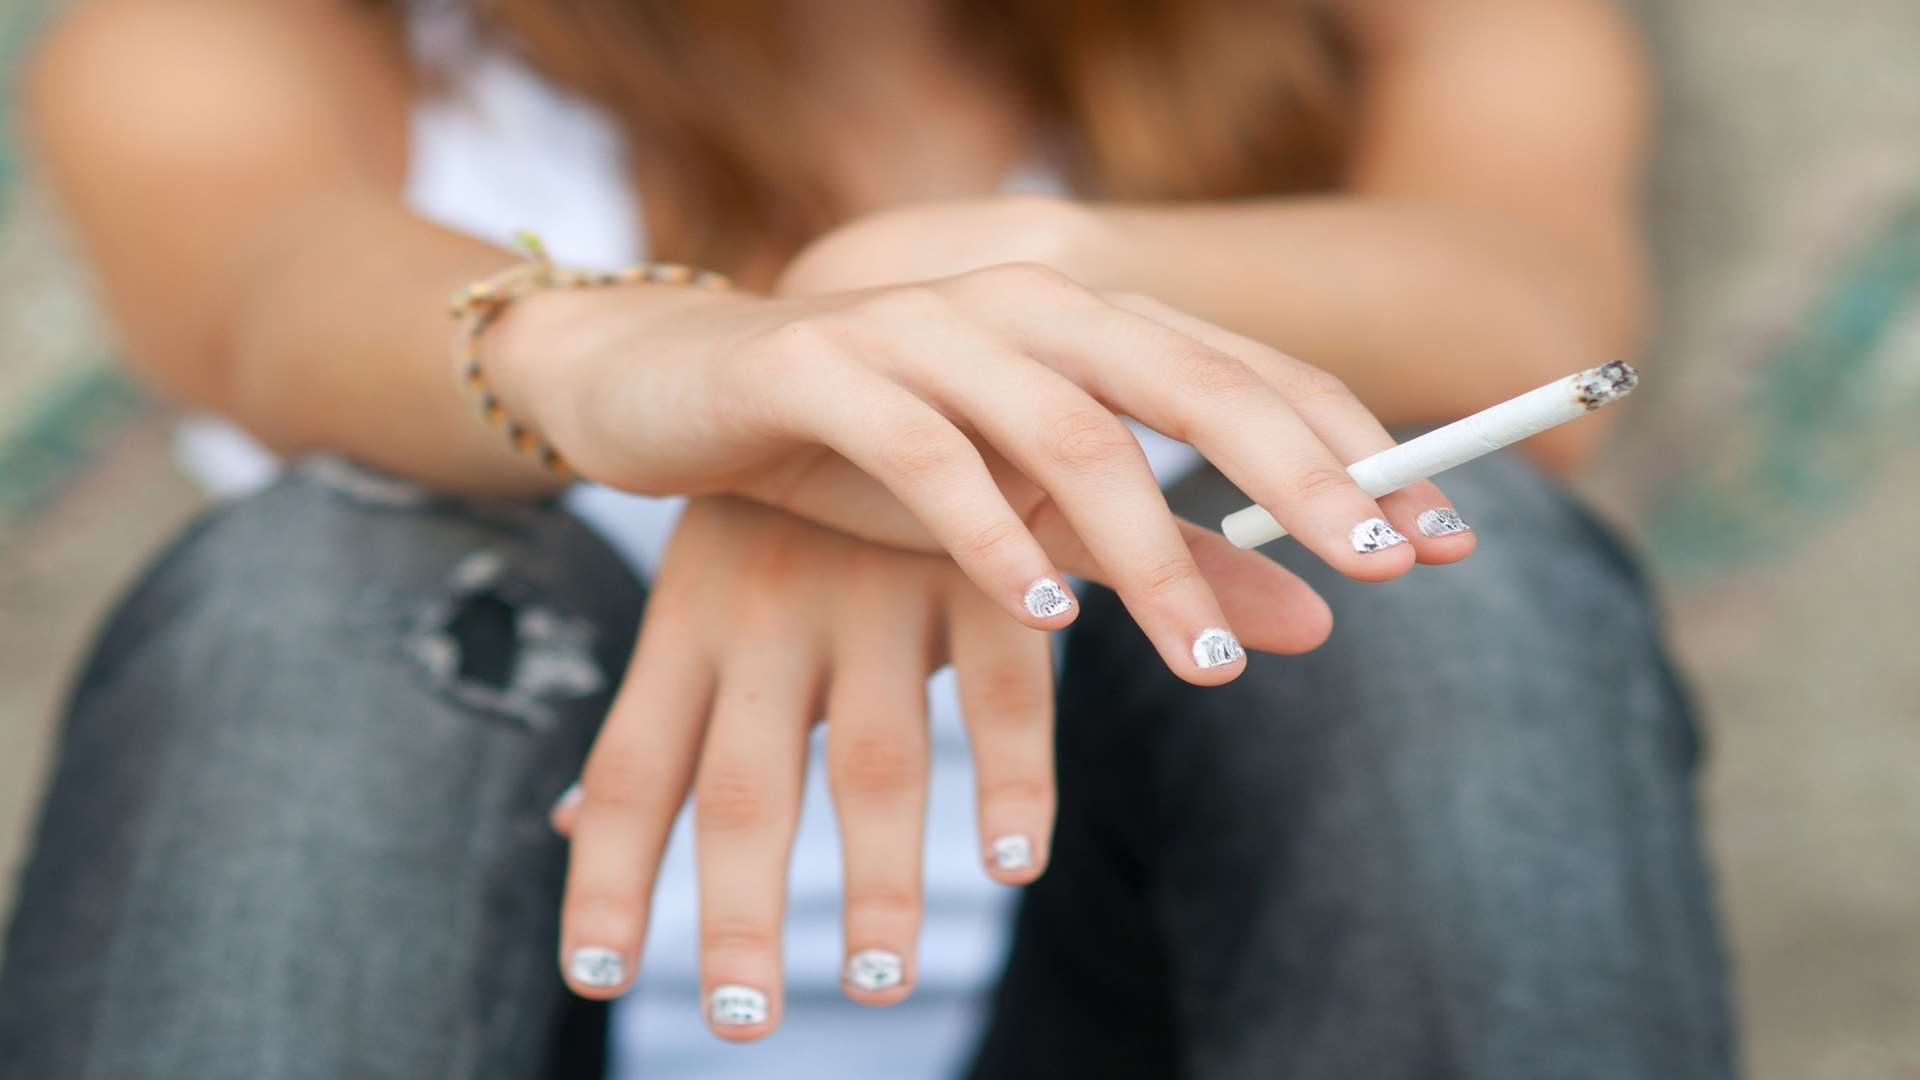 65% of smokers in Kent who attended drop-in sessions managed to stop smoking